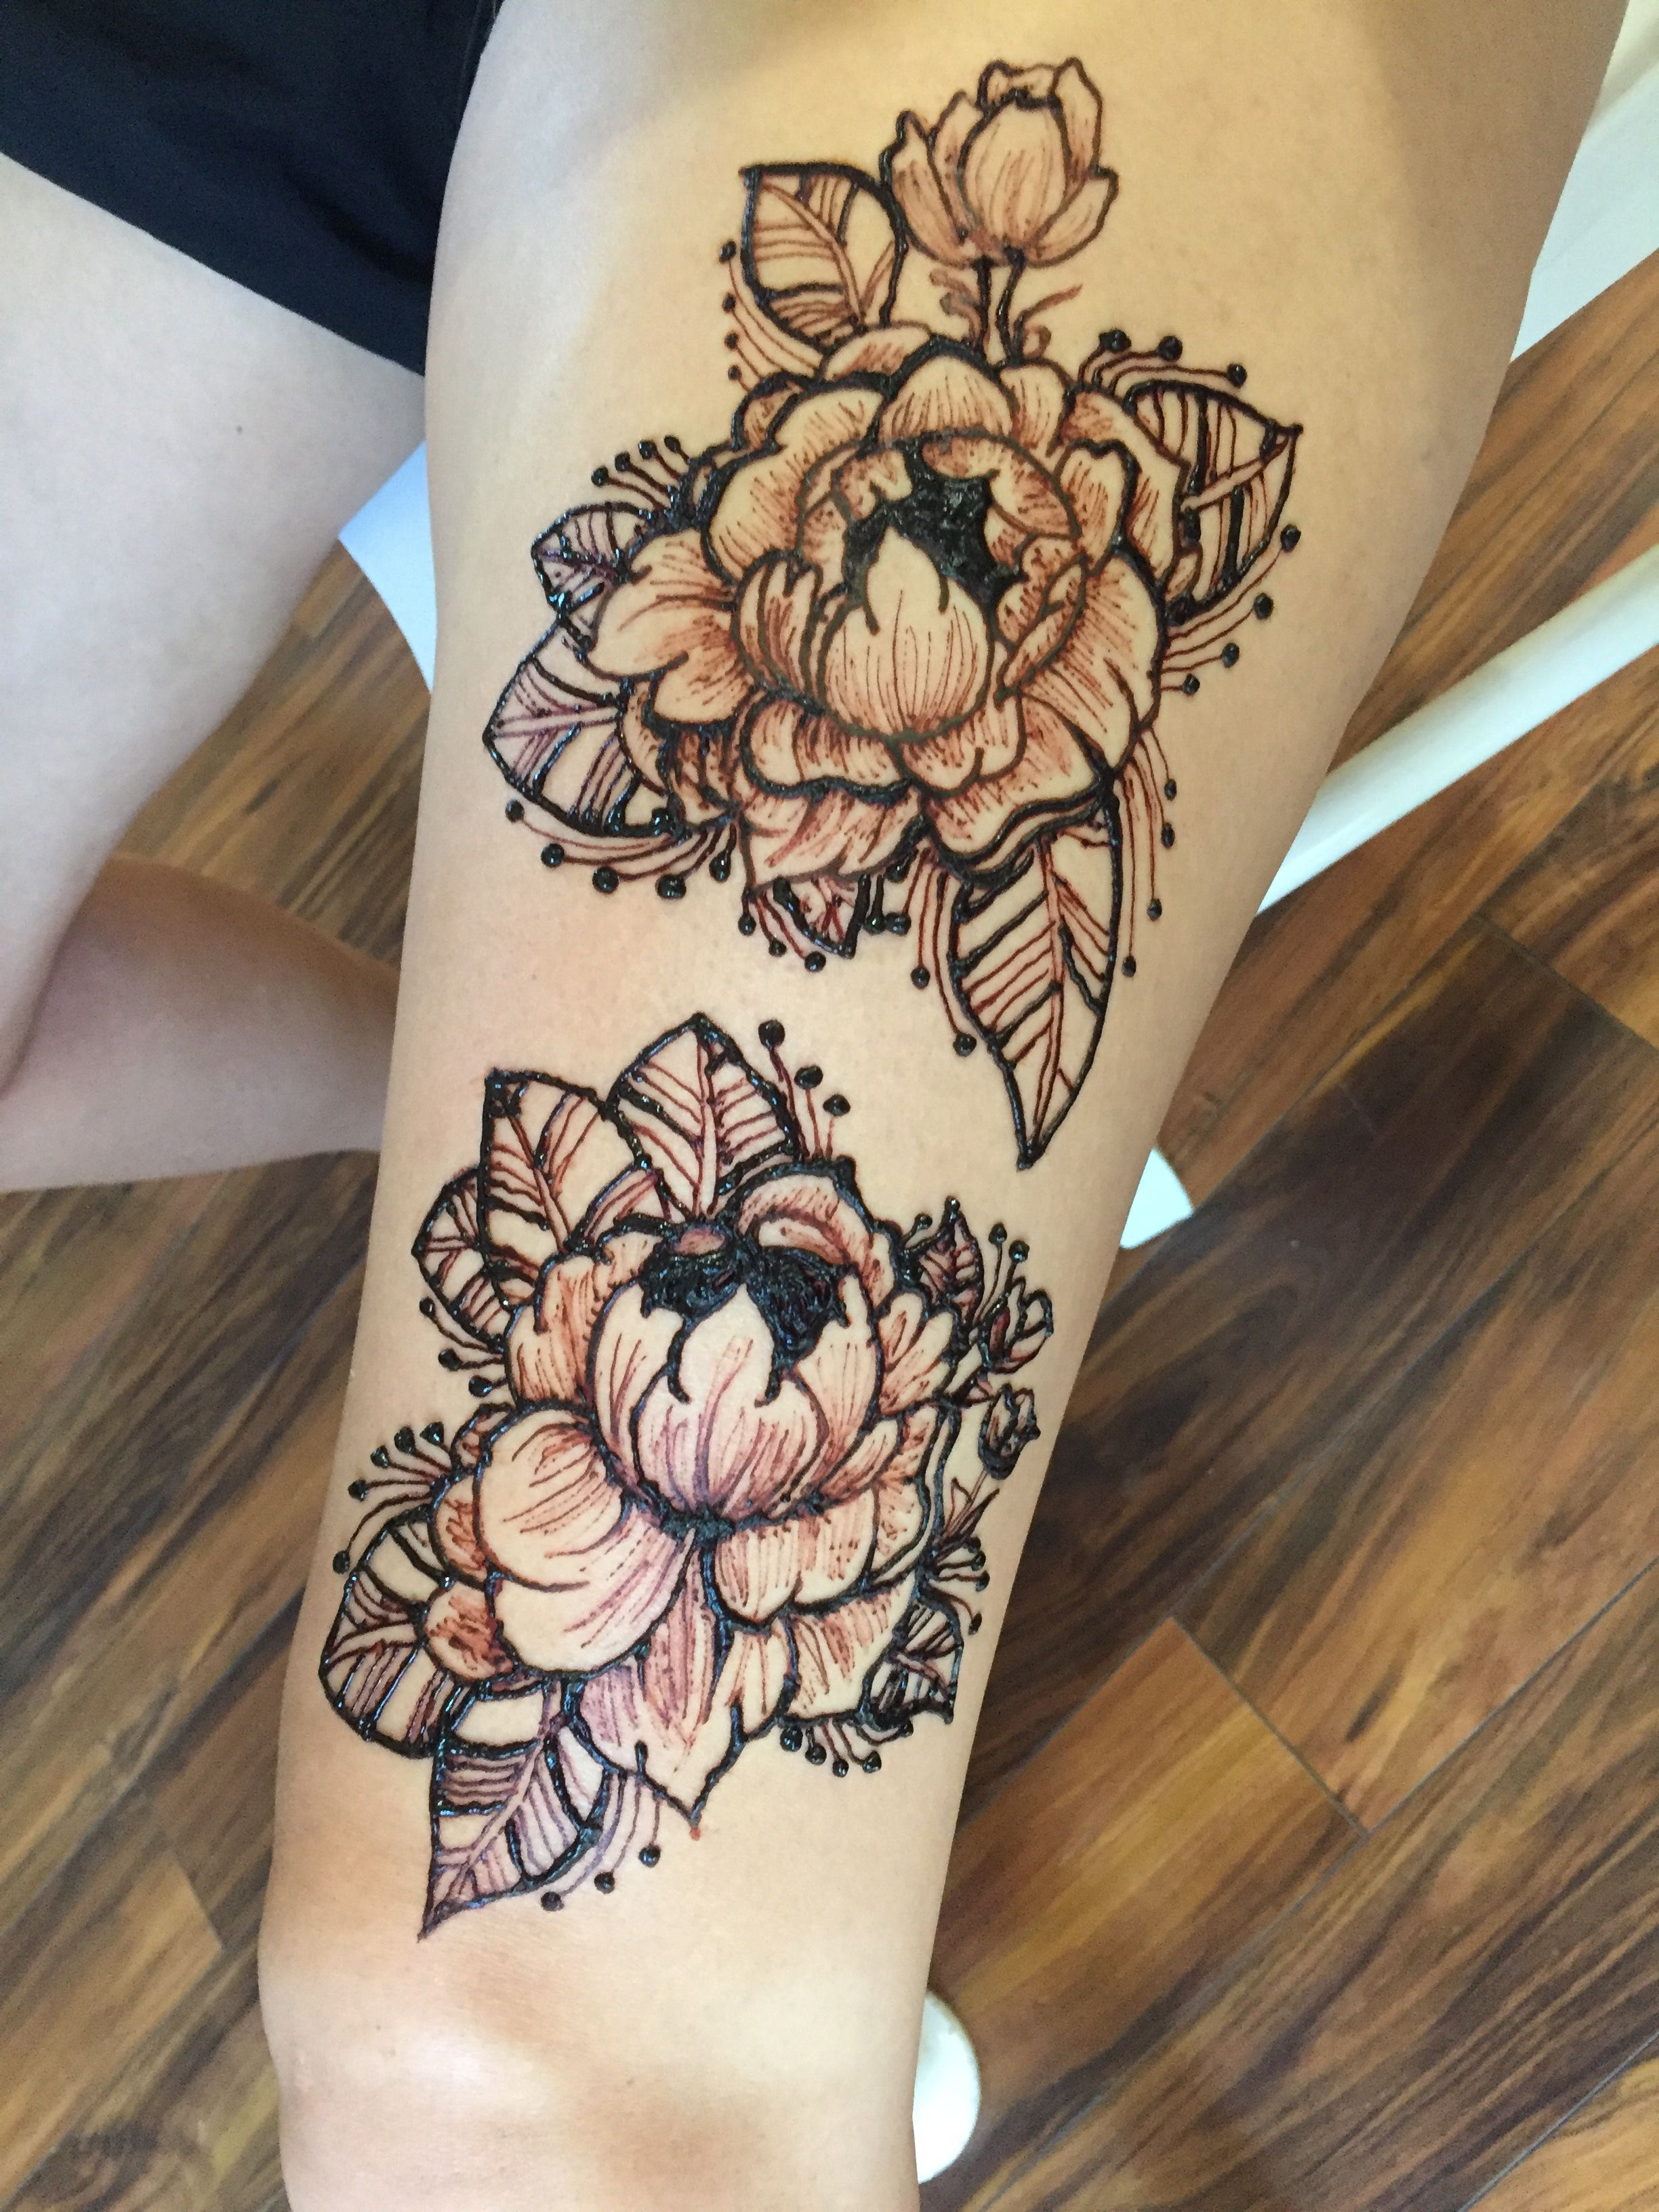 Cool Henna Tattoo Designs: Peony Henna Tattoo For The Summer! Inspired By